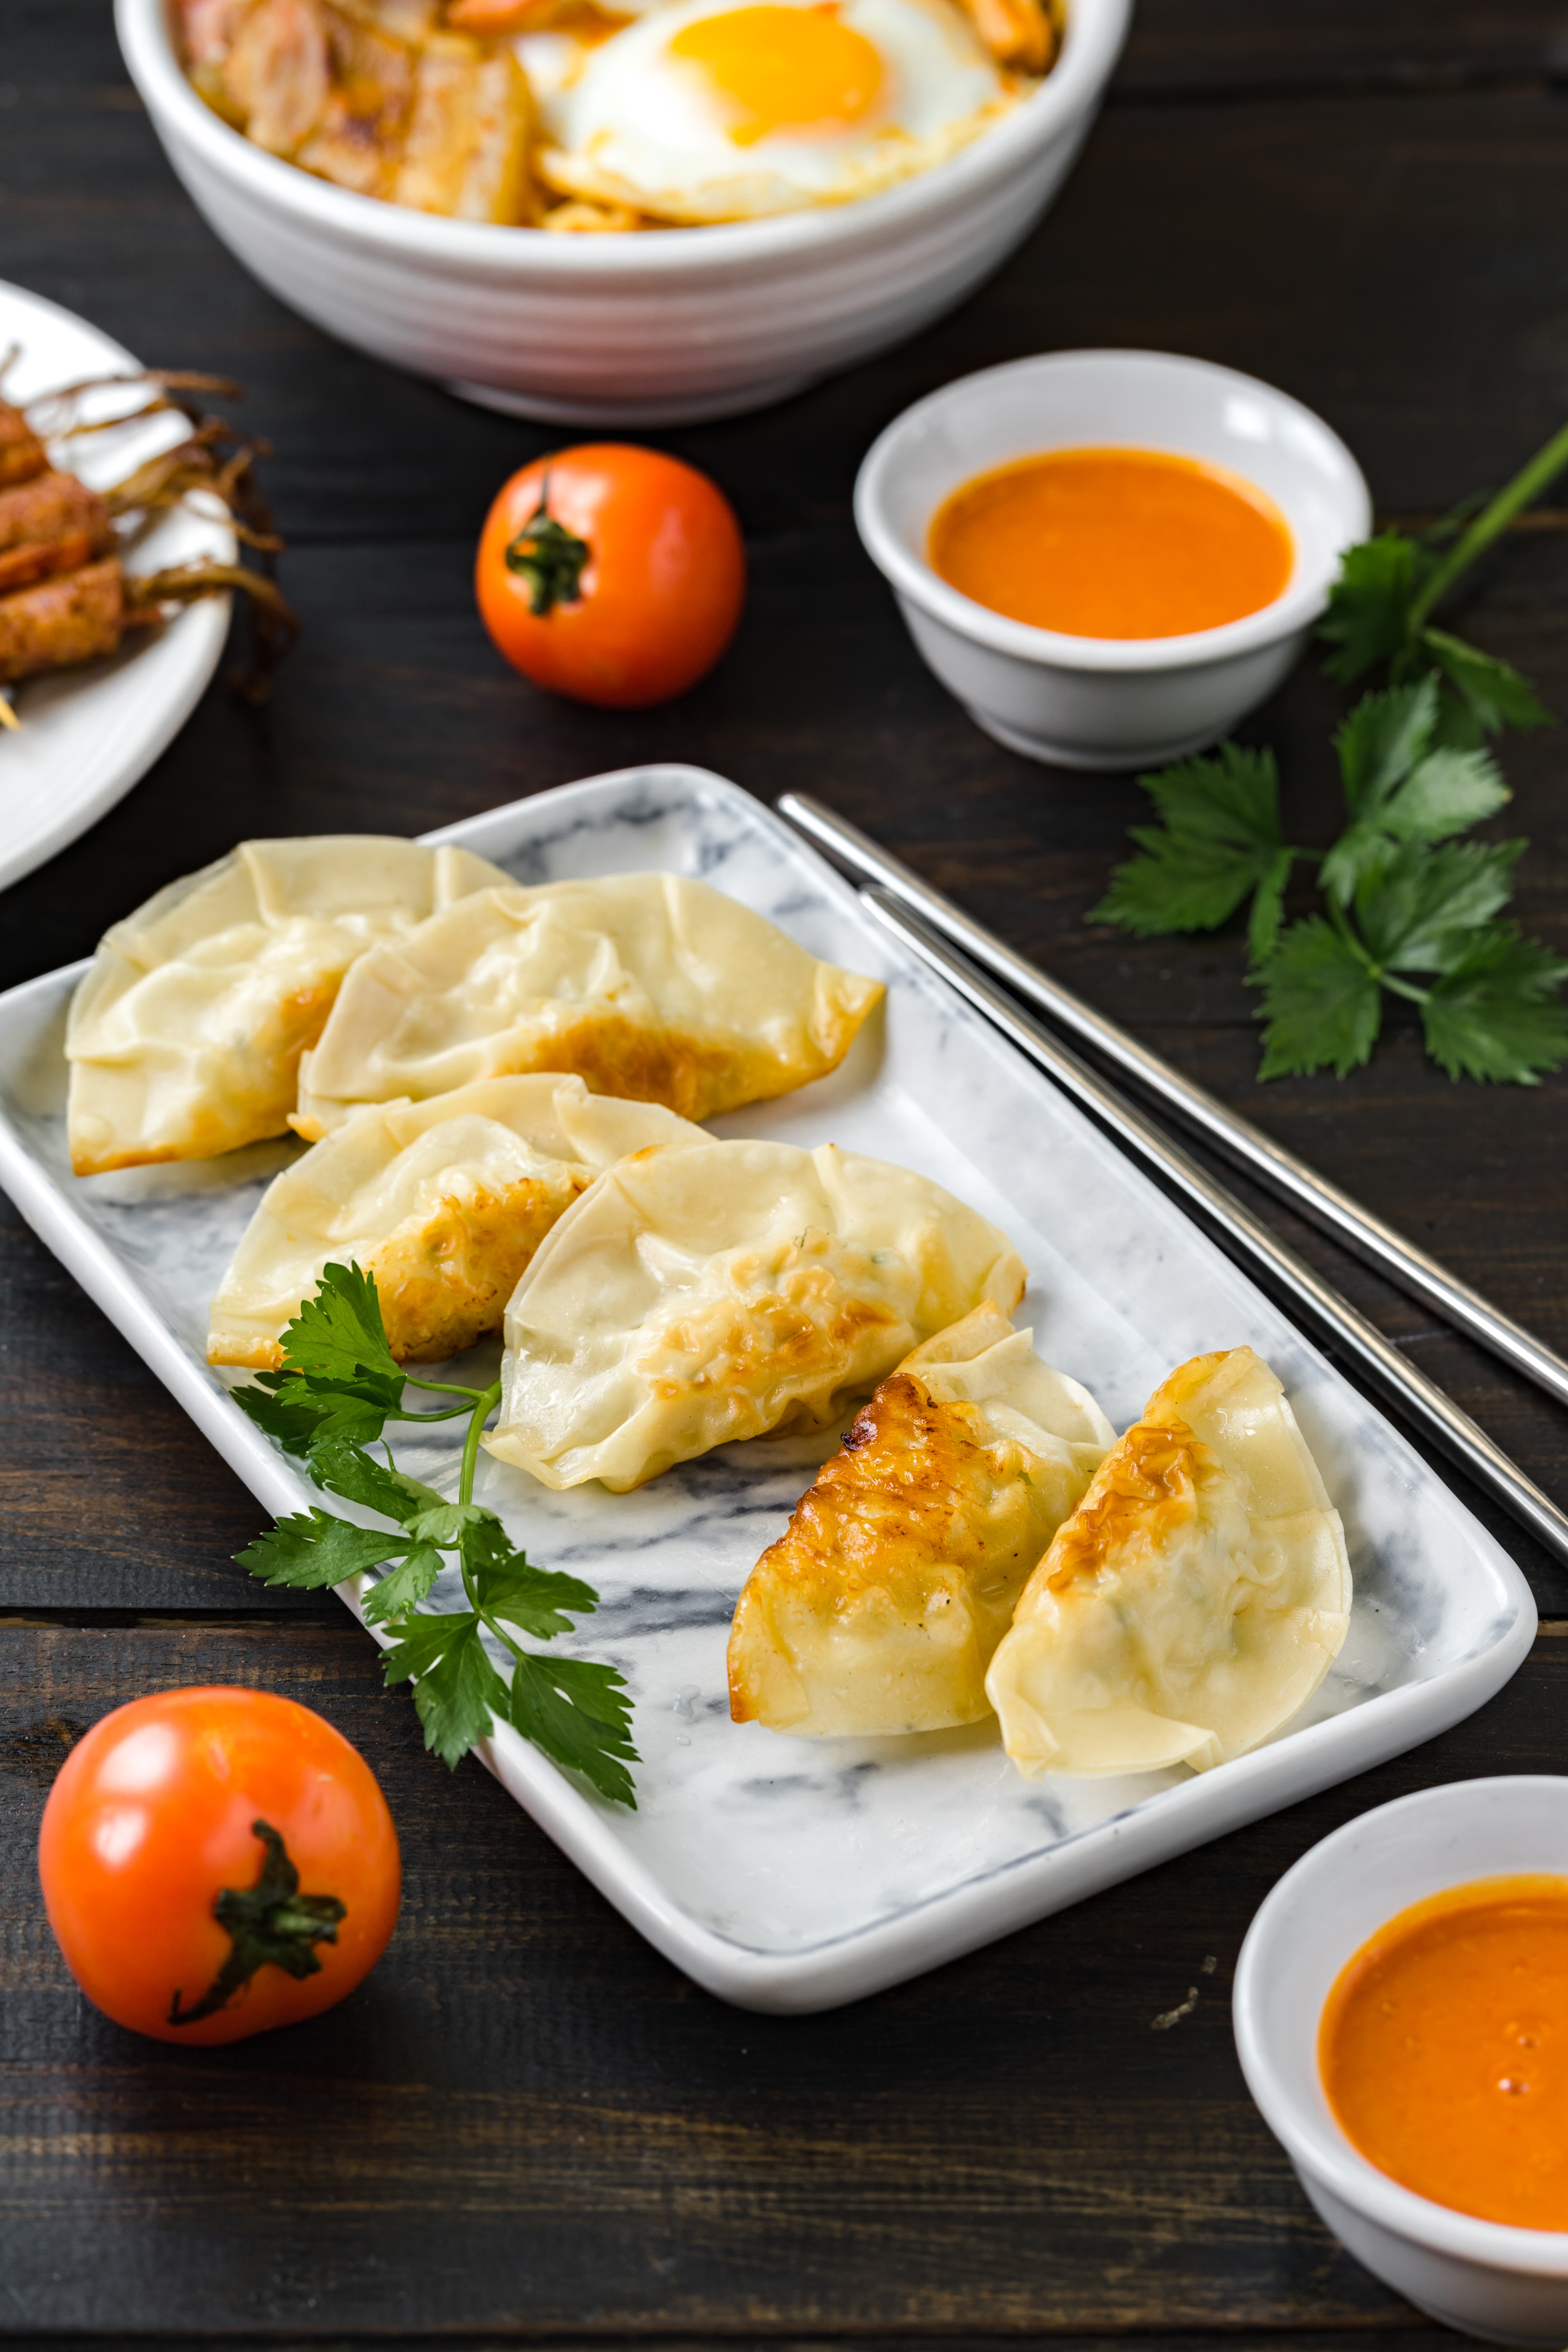 Pan-fried Japanese dumplings or Gyoza